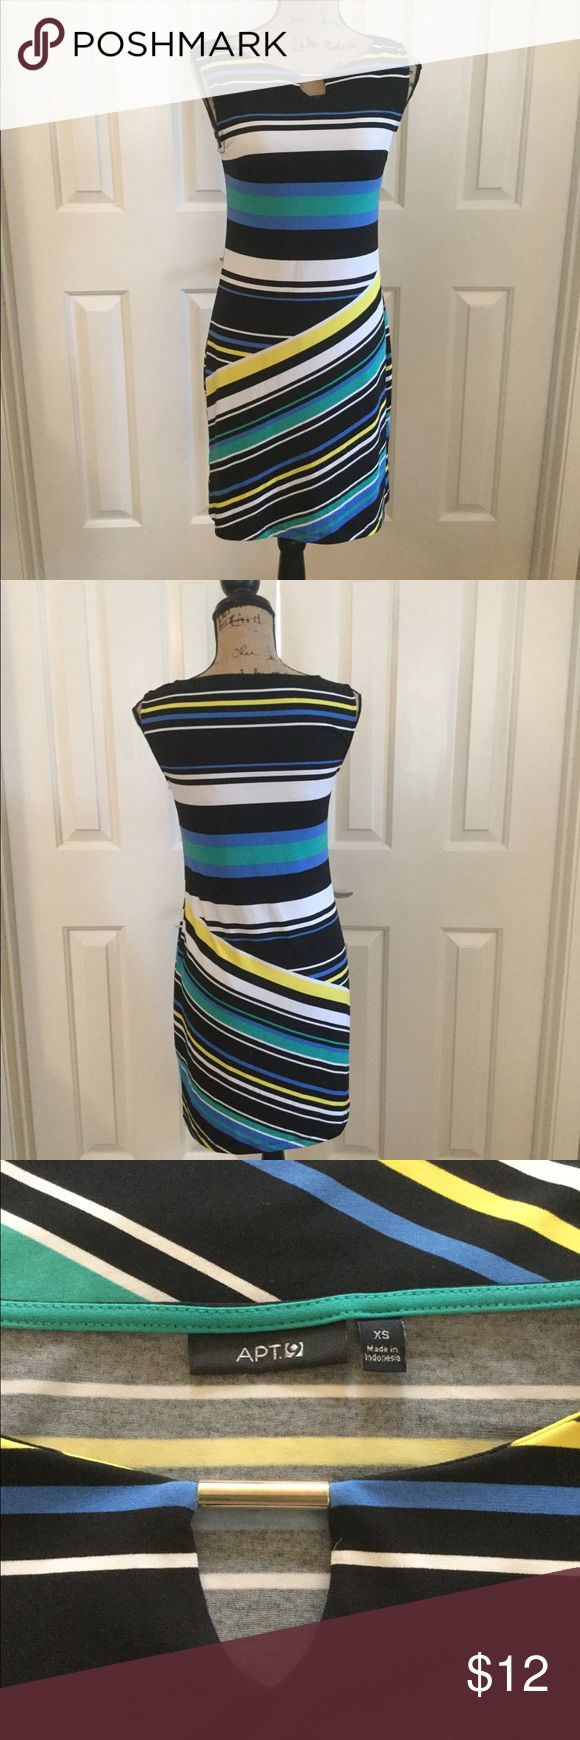 Apt 9 Striped Bodycon Dress XS The perfect dress to wear to the office.  It's very figure flattering and can transition easily from work to play. Apt. 9 Dresses